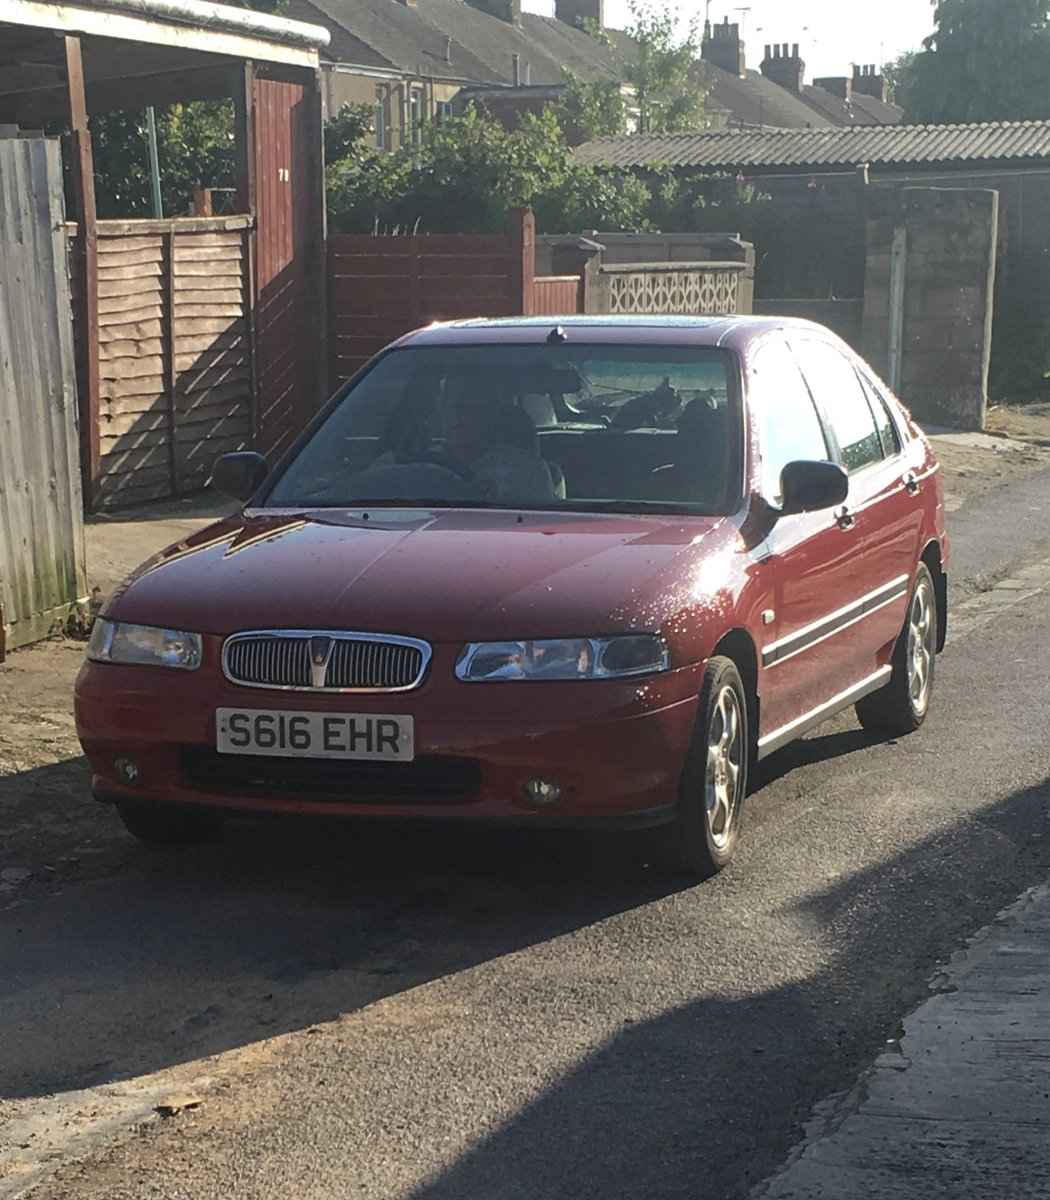 1998 Great condition Red Rover 414S- 1 owner, low miles For Sale (picture 1 of 6)